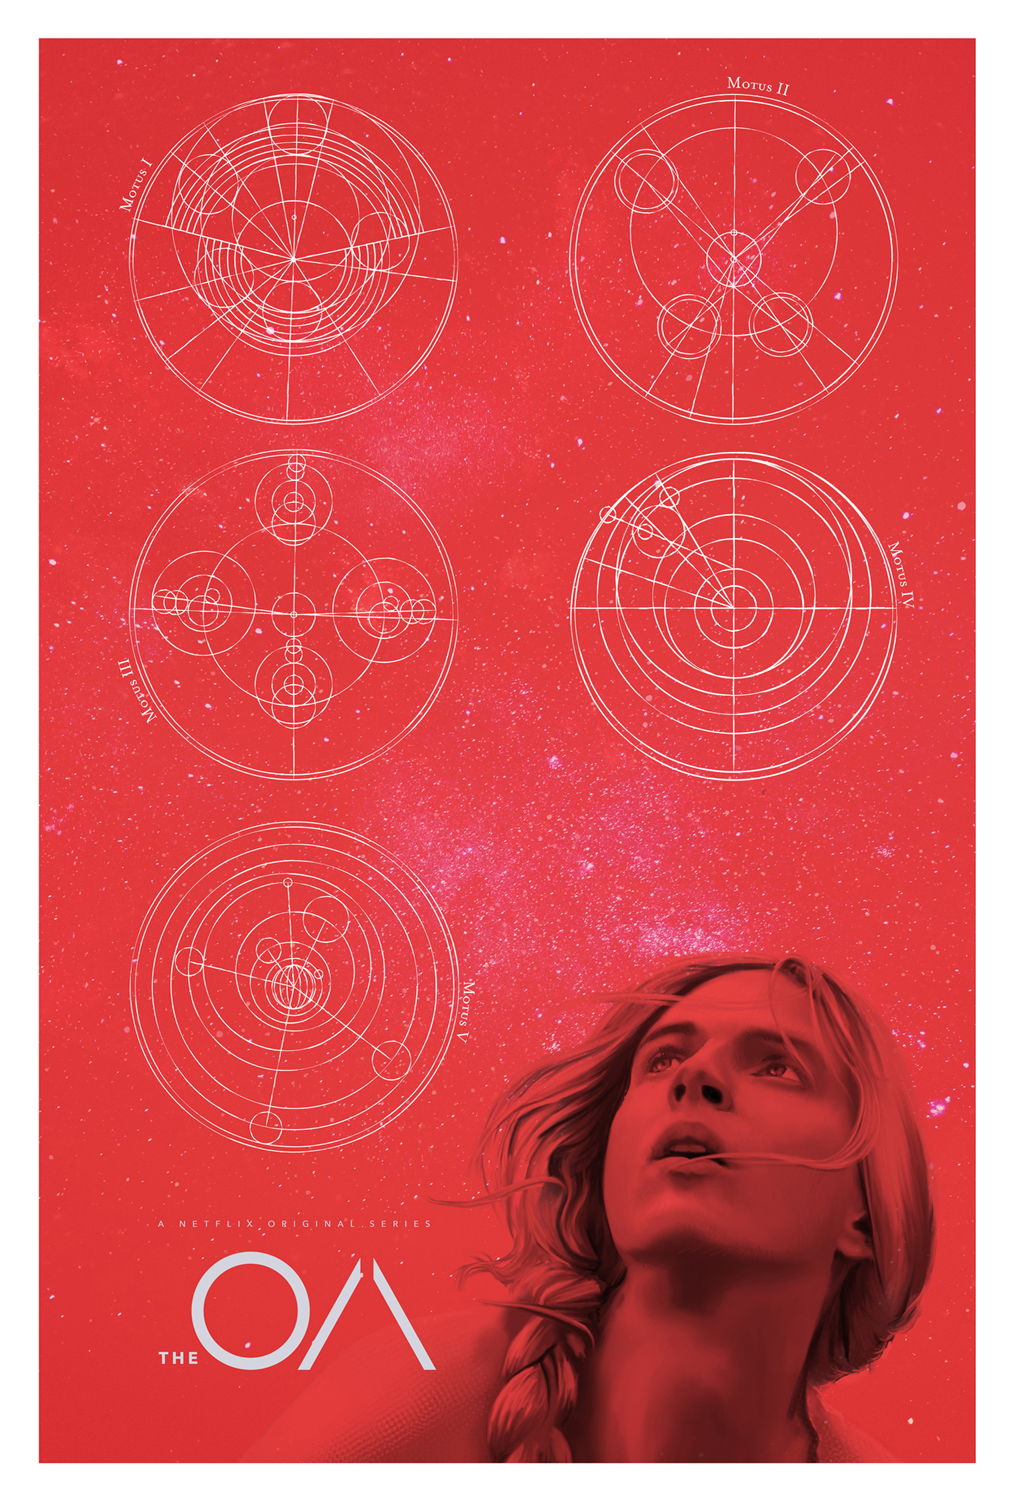 The OA Red Variant NETFLIX MOVIE poster design by Mark Levy Art